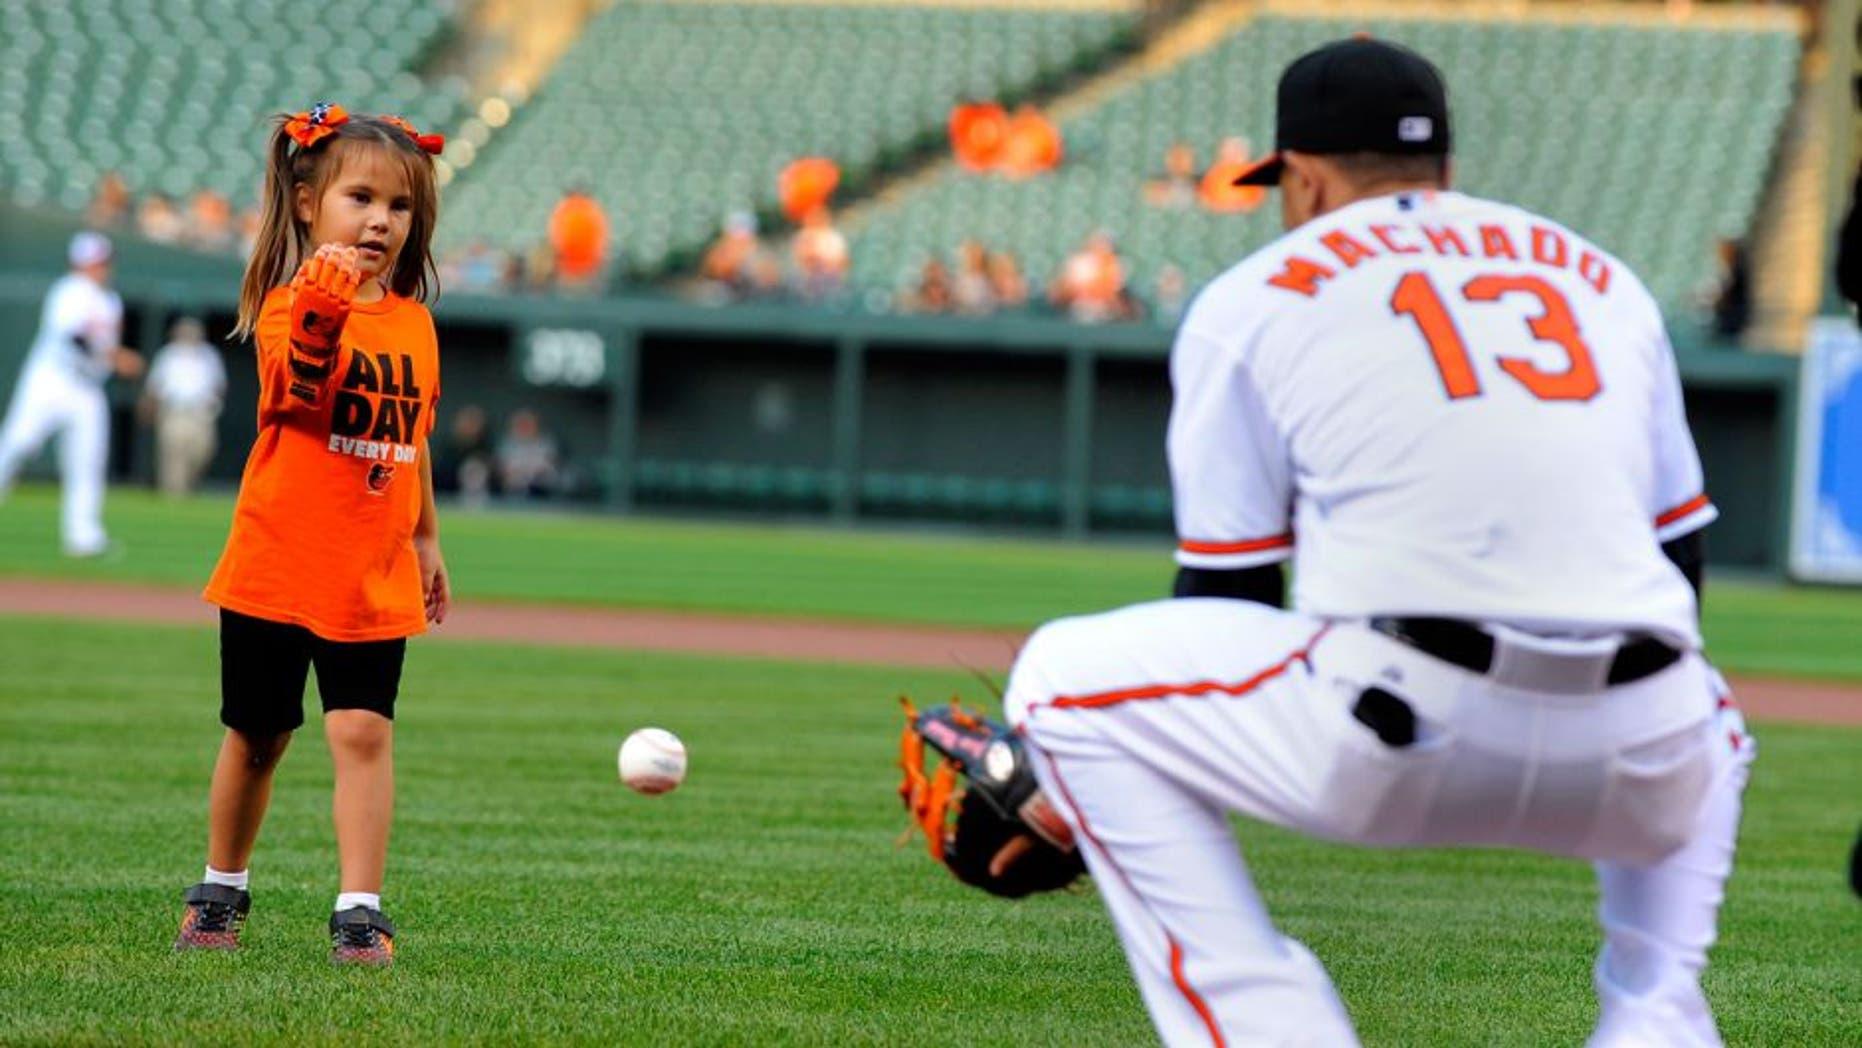 "Hailey Dawson, a 5-year-old from Las Vegas, throws the ceremonial first pitch before a game between the Baltimore Orioles and Oakland Athletics on Monday, Aug. 17, 2015, at Camden Yards in Baltimore. Hailey was born with Poland Syndrome. Engineering students at the University of Nevada, Las Vegas created the ""Flexy Hand 2"" that she wore to throw the ball. (Lloyd Fox/Baltimore Sun/TNS via Getty Images)"